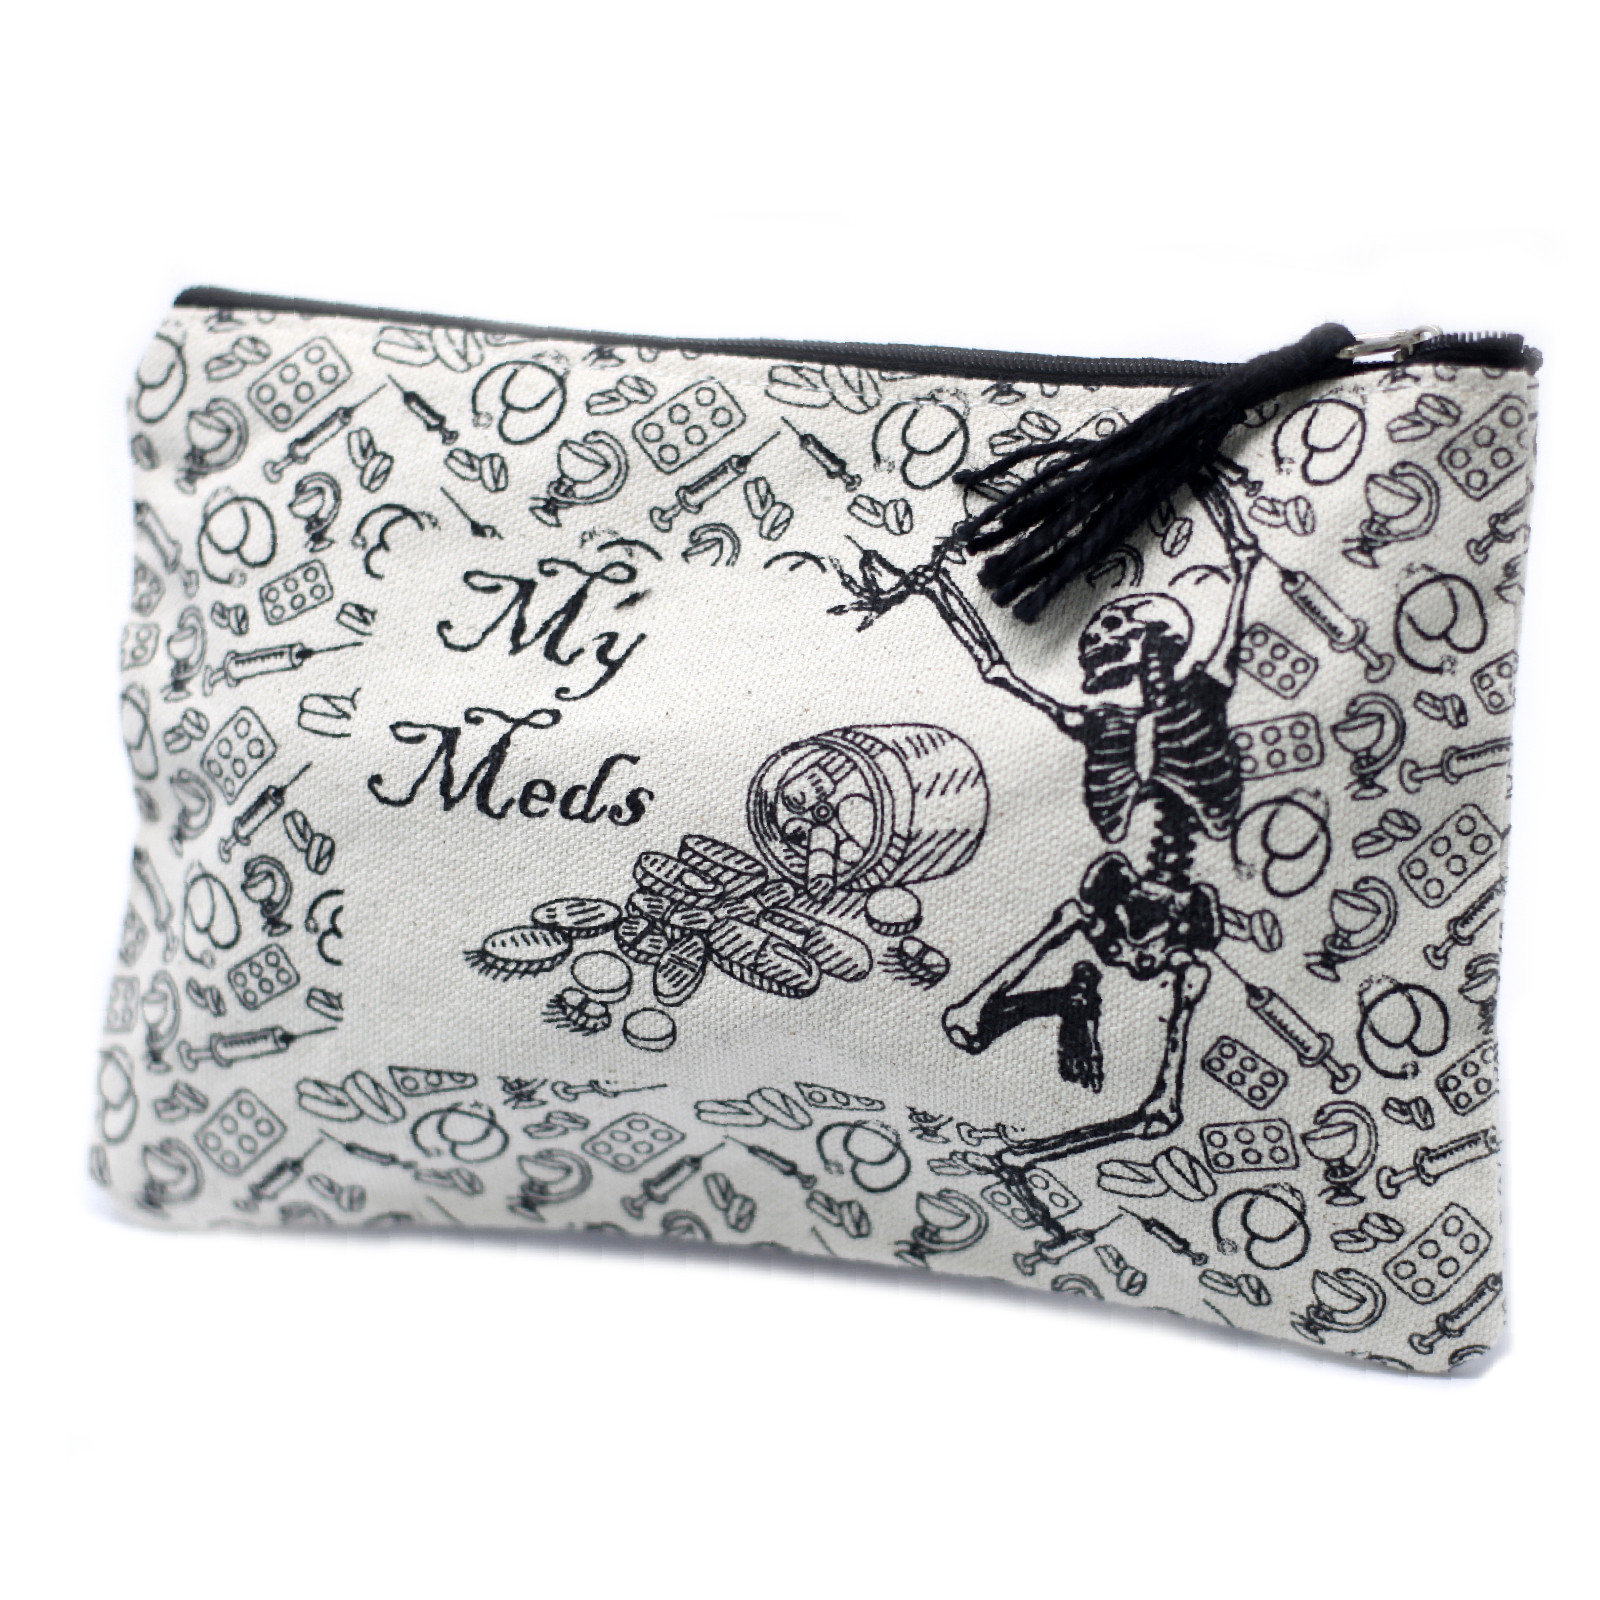 Classic Zip Pouch My Med